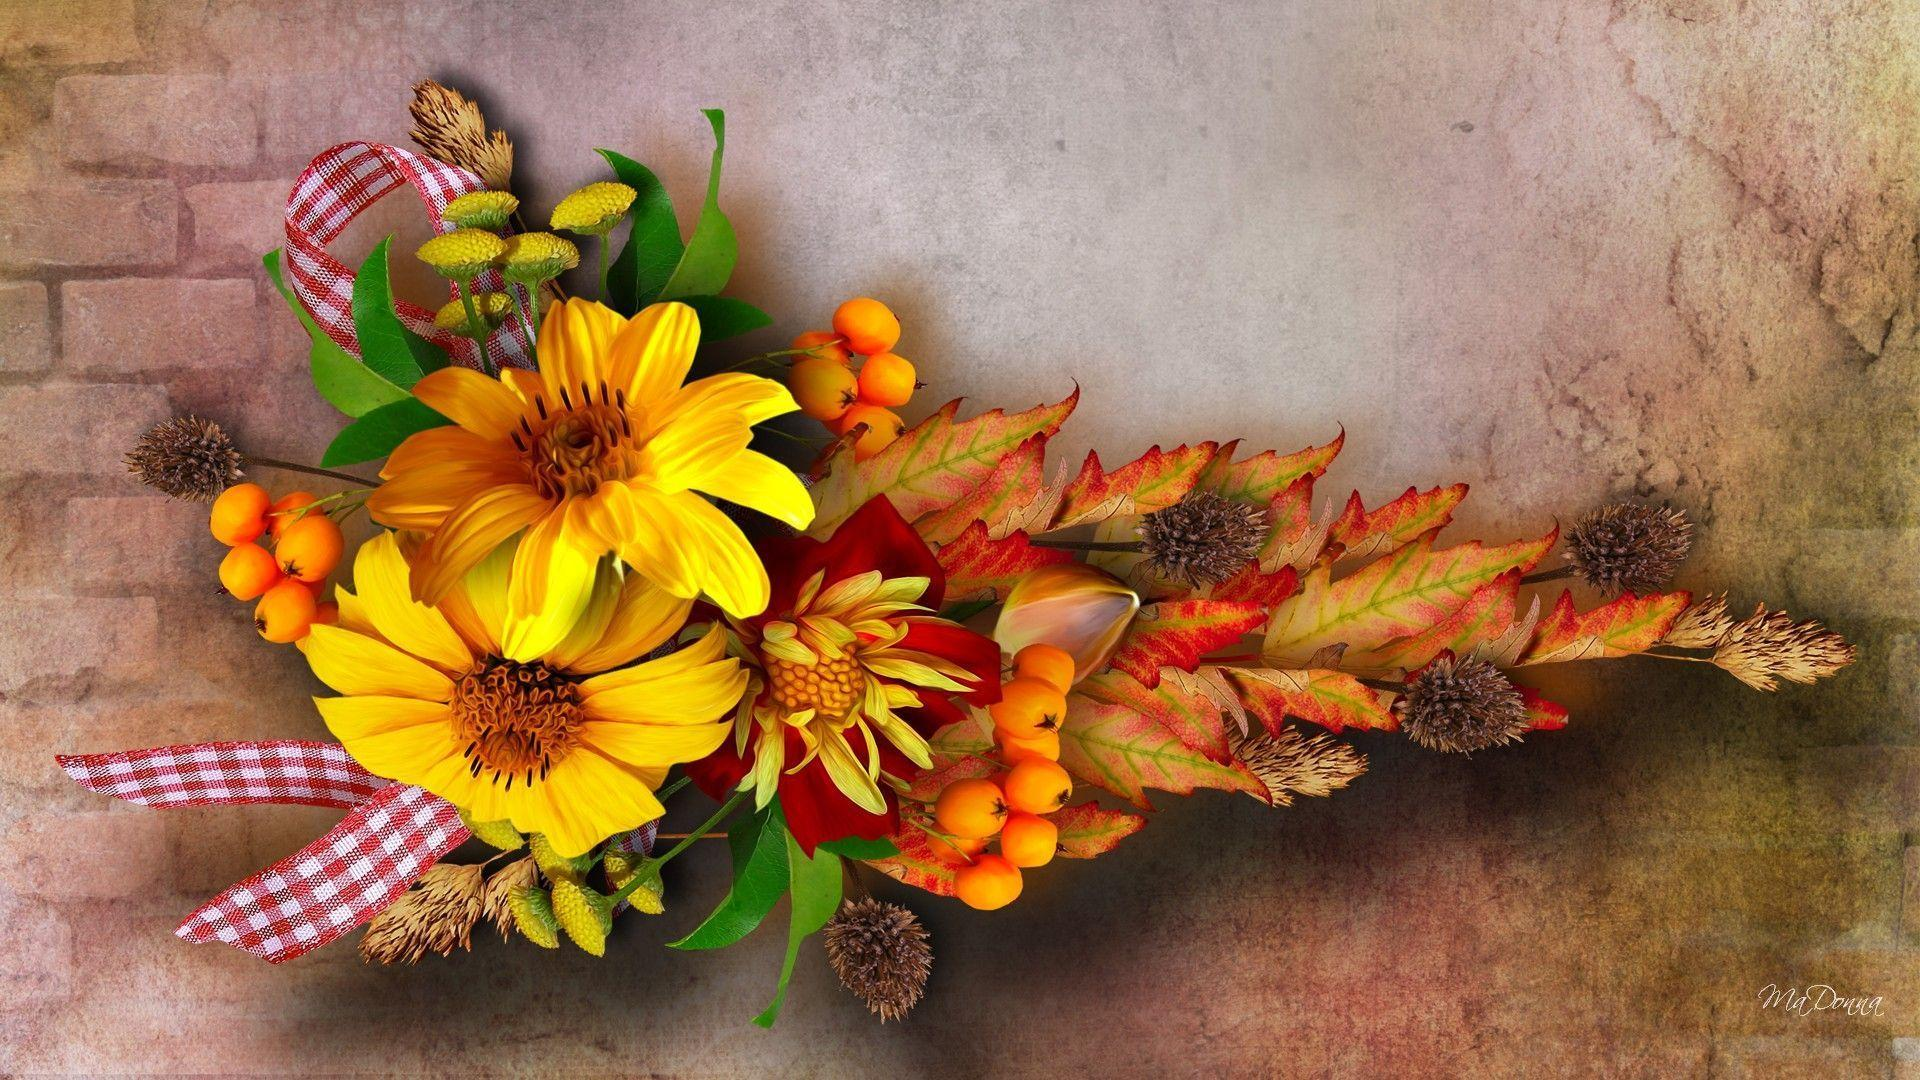 Fall Wallpaper With Pumpkins Fall Flowers Wallpapers Wallpaper Cave